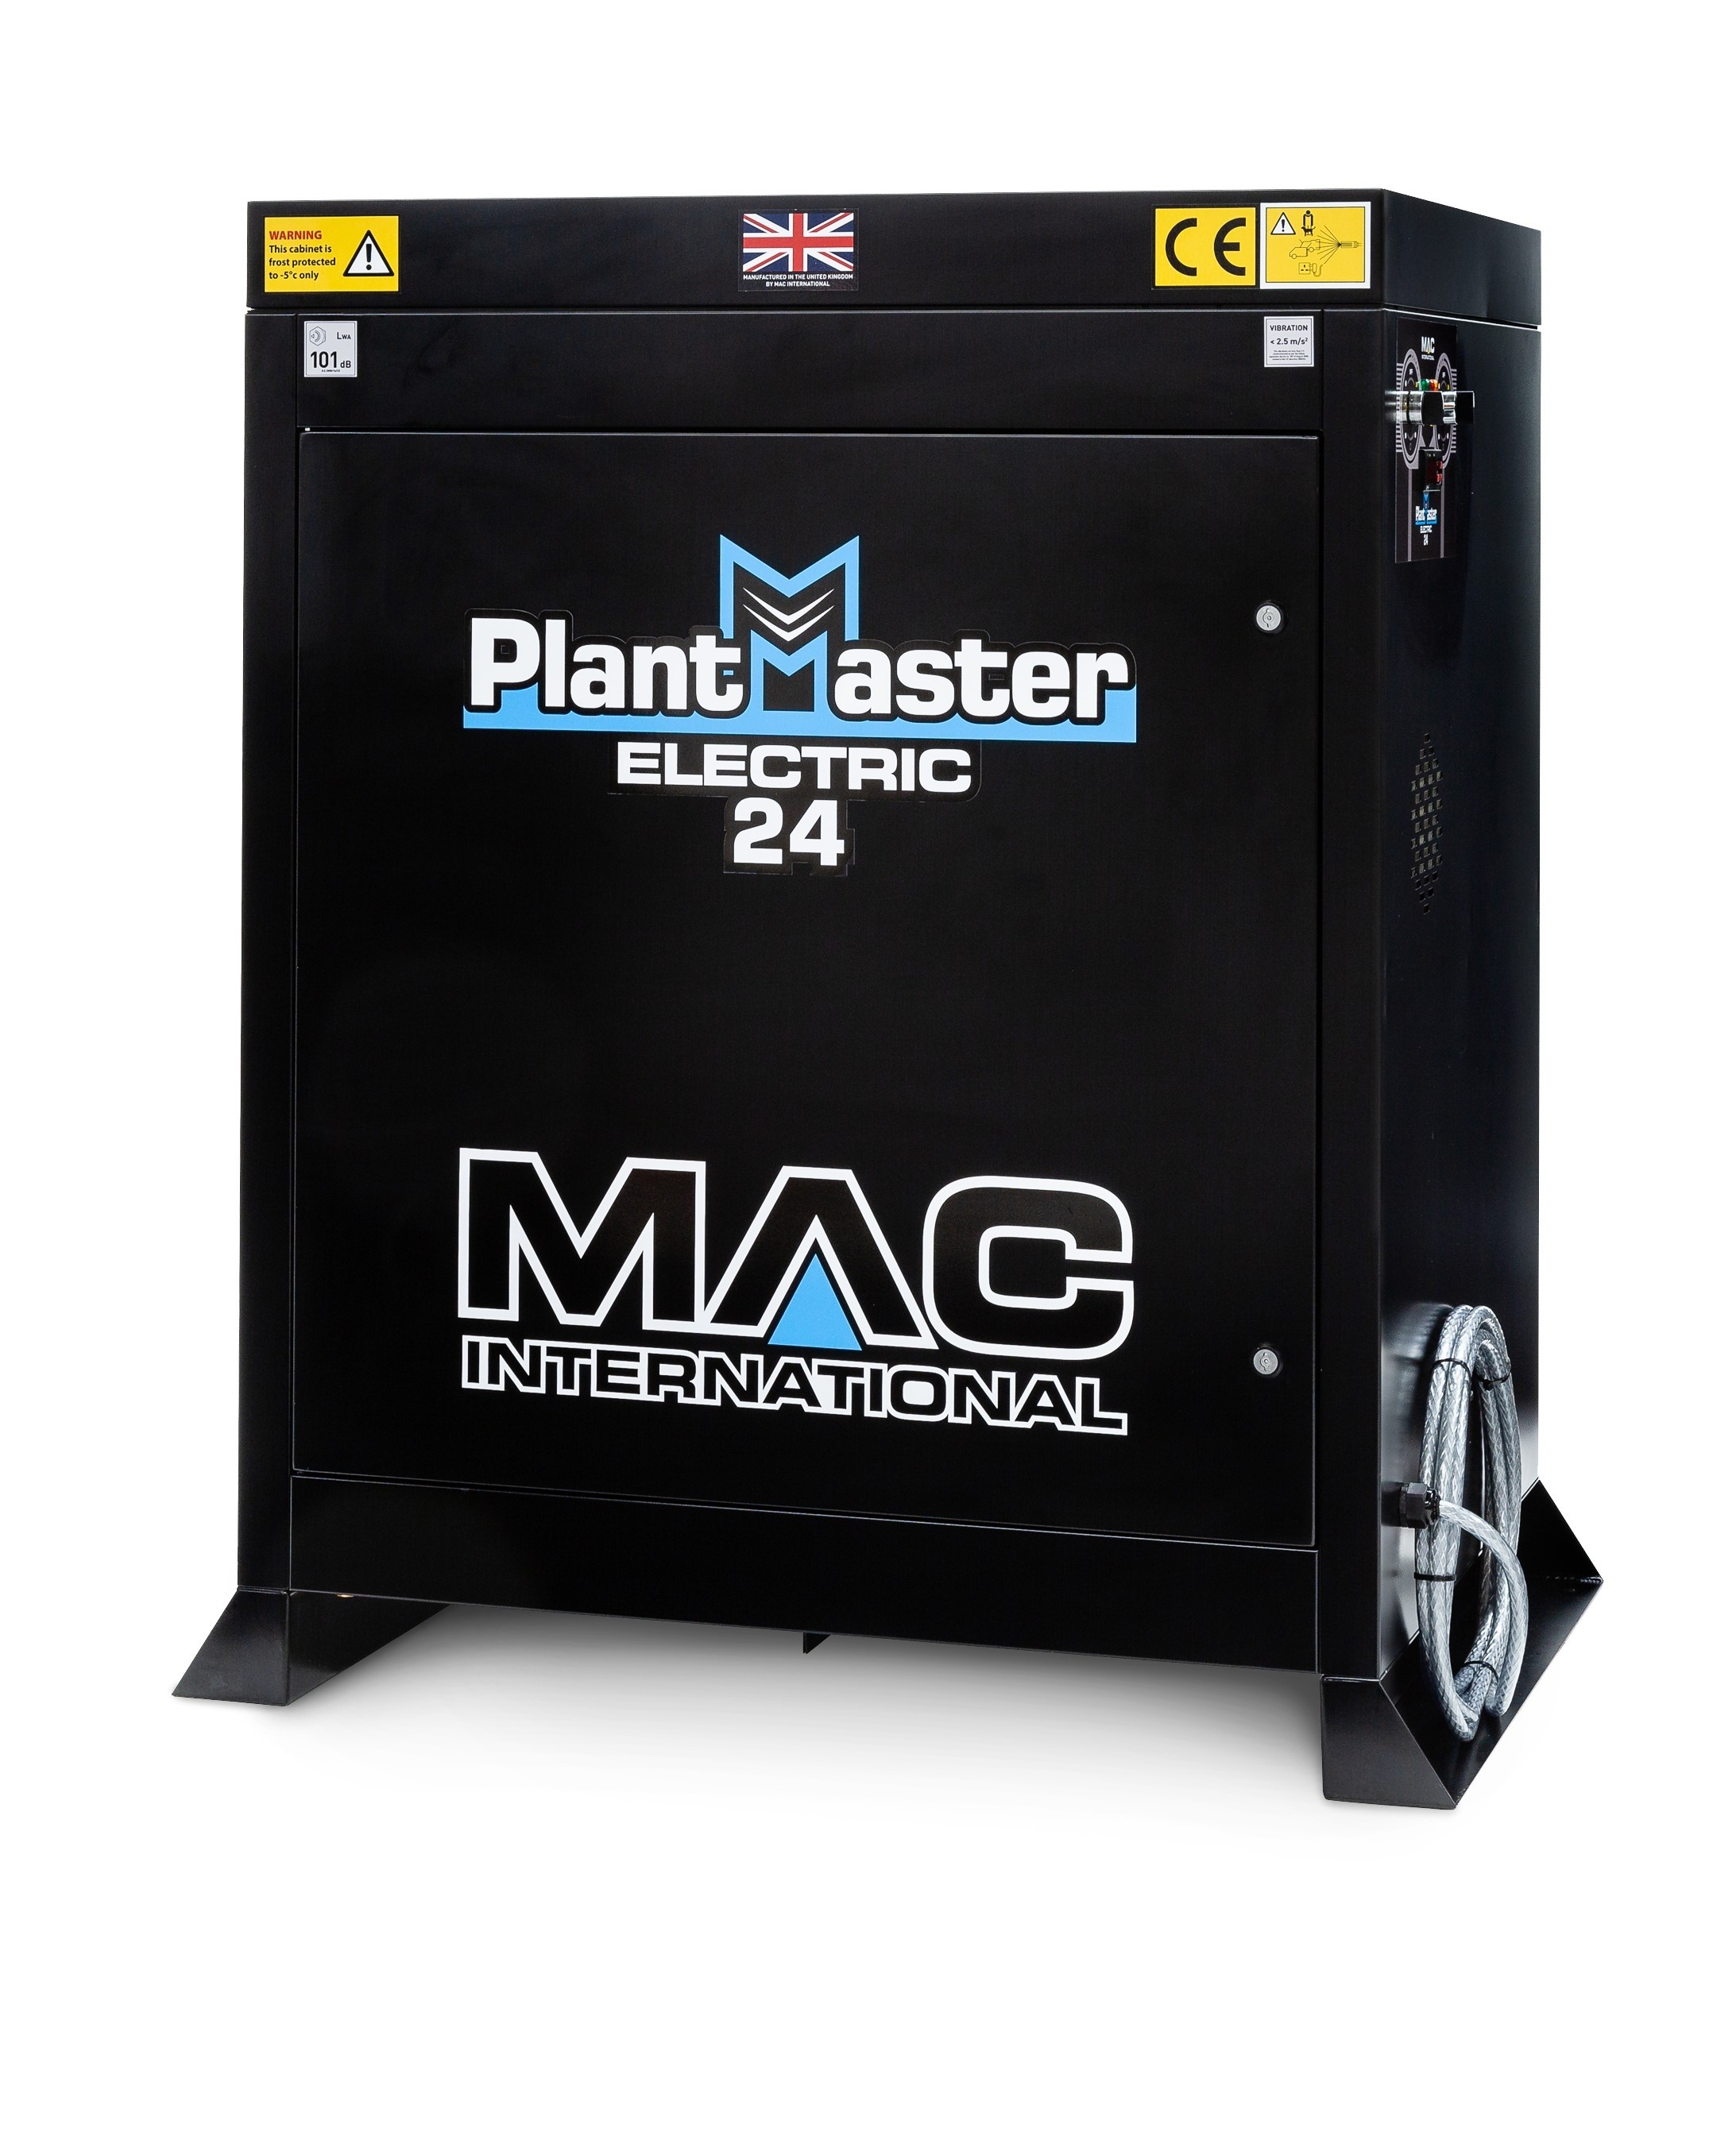 PLANTMASTER ELECTRIC